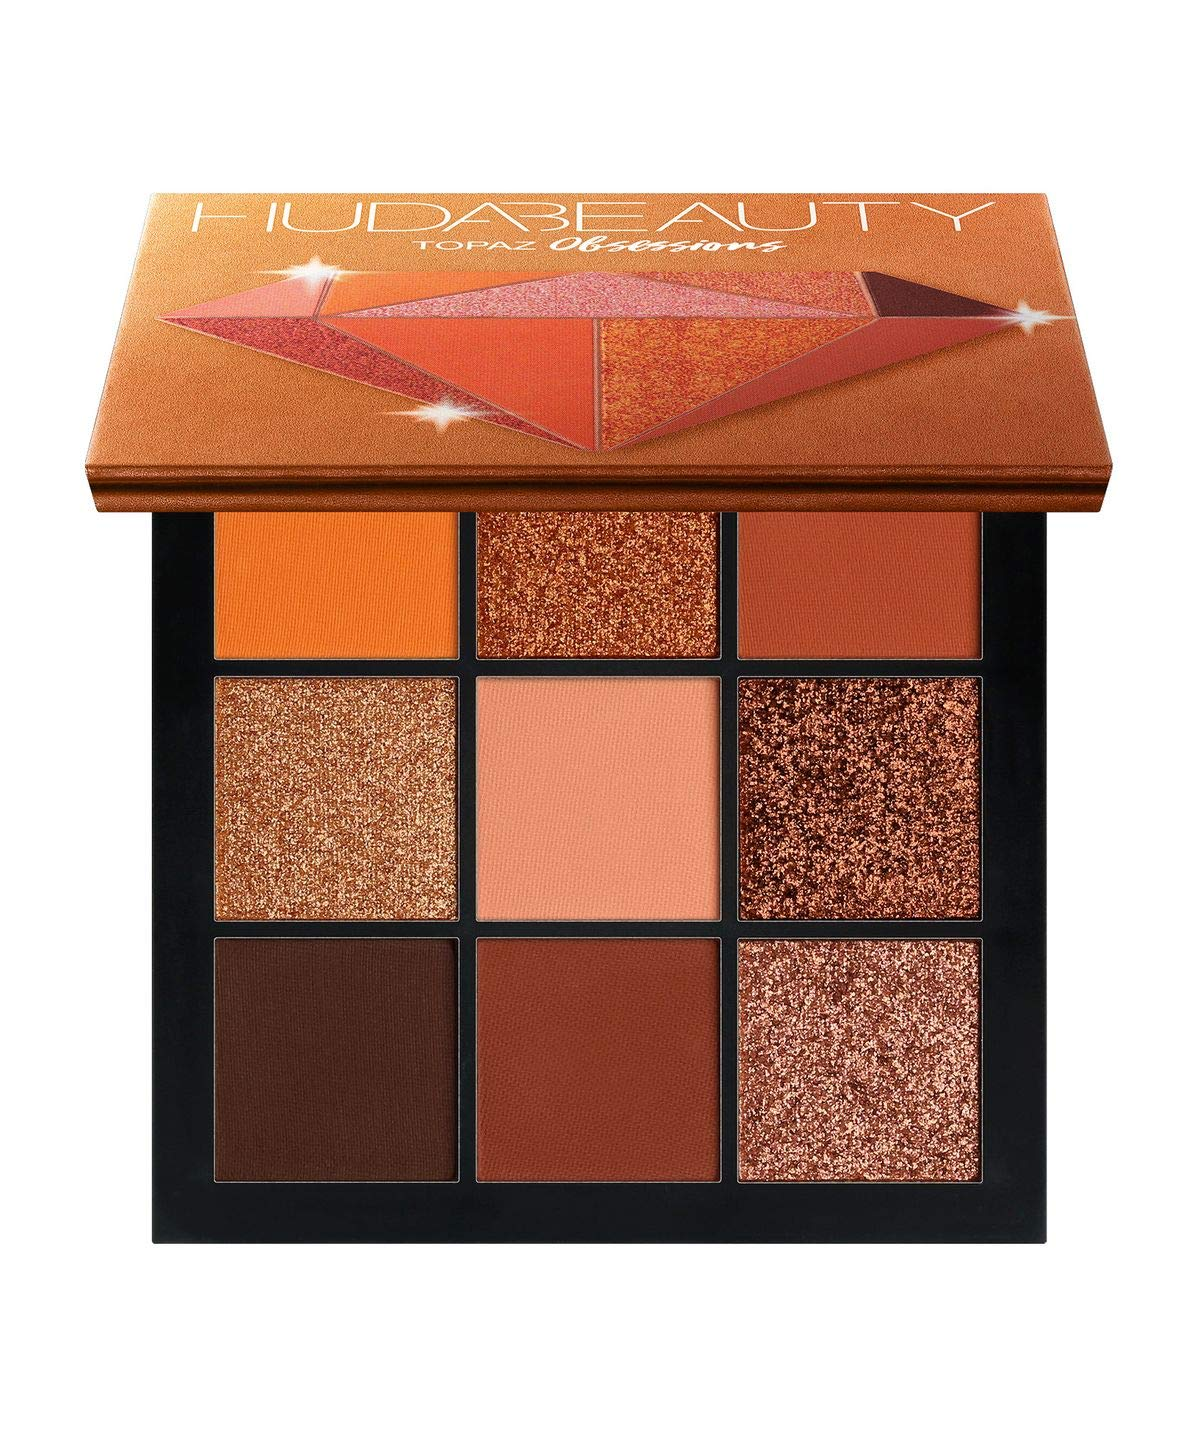 HUDA BEAUTY Topaz Obsessions Palette Limited Edition by Huda Beauty